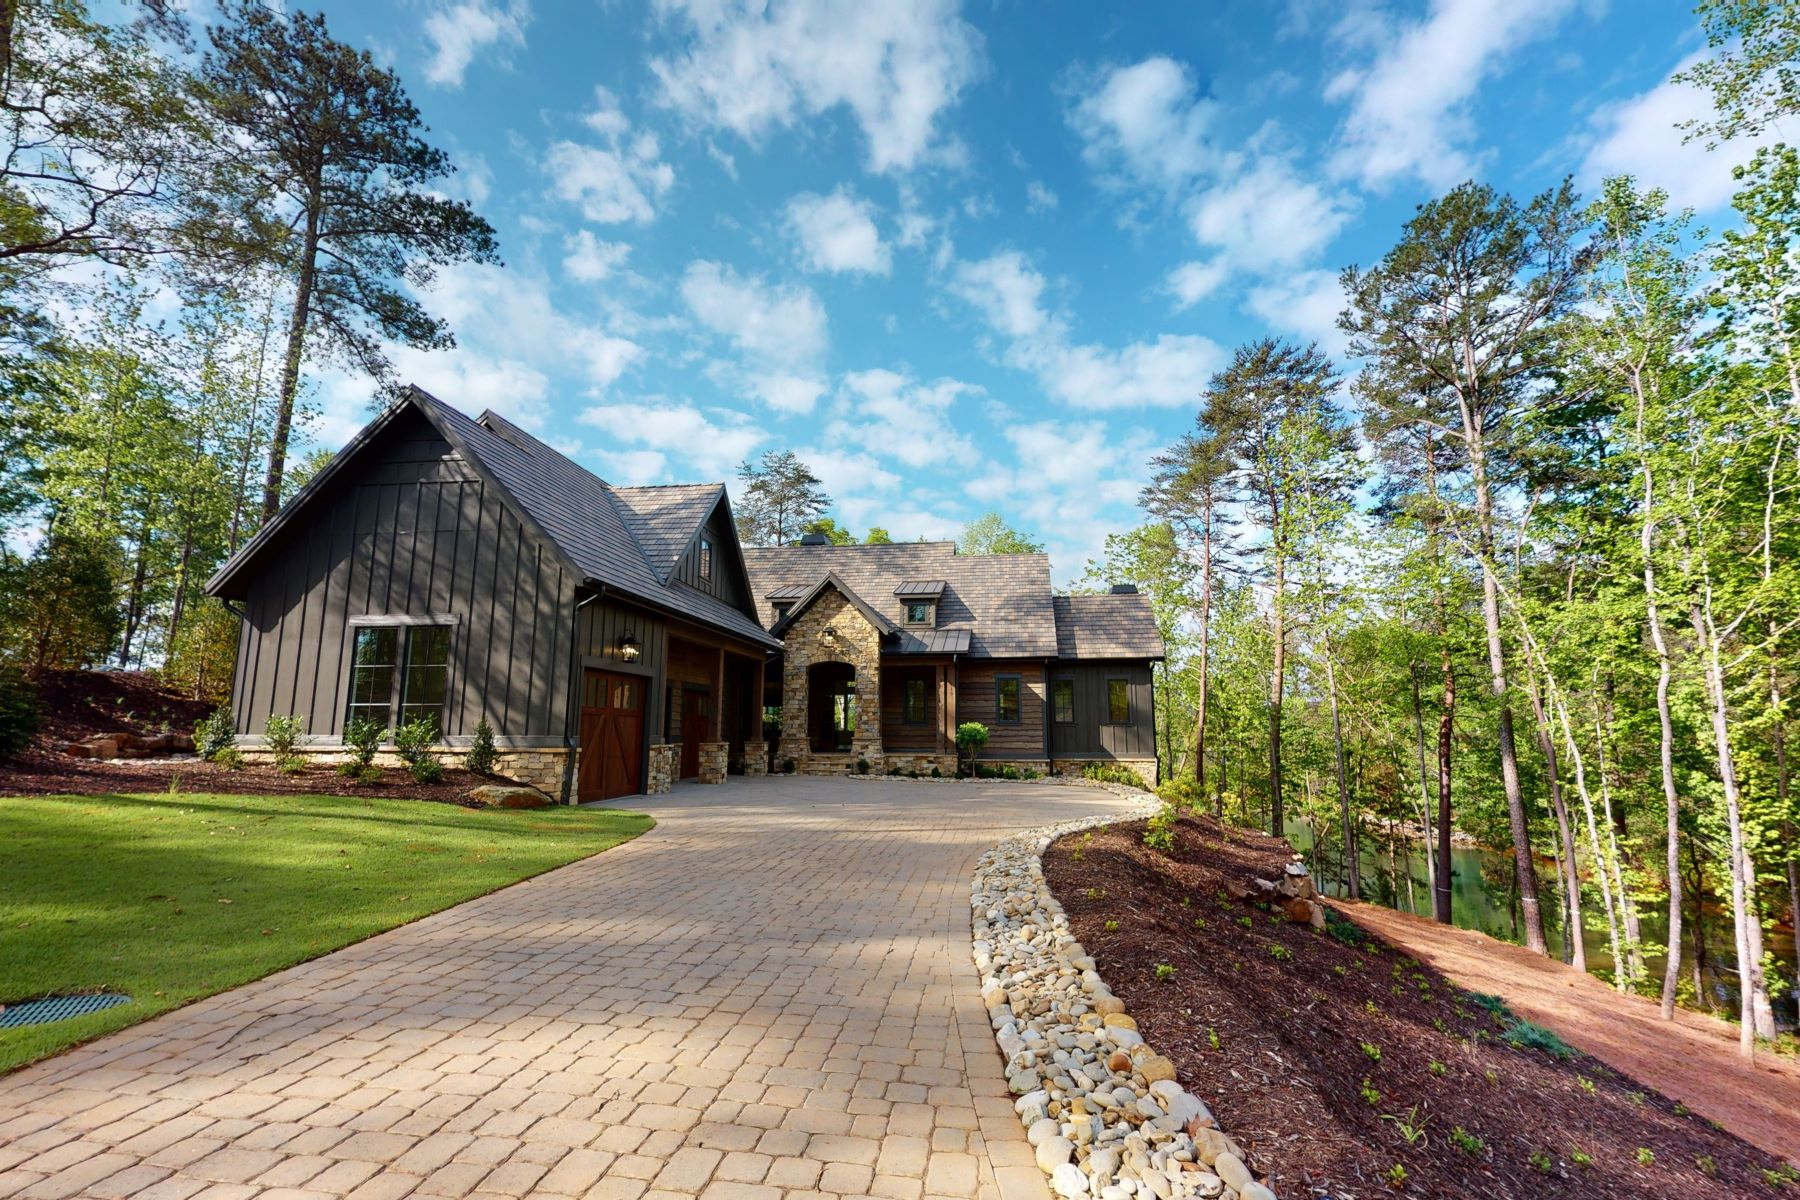 Single Family Homes for Sale at Lakeside Home with Views 415 Peninsula Ridge Sunset, South Carolina 29685 United States